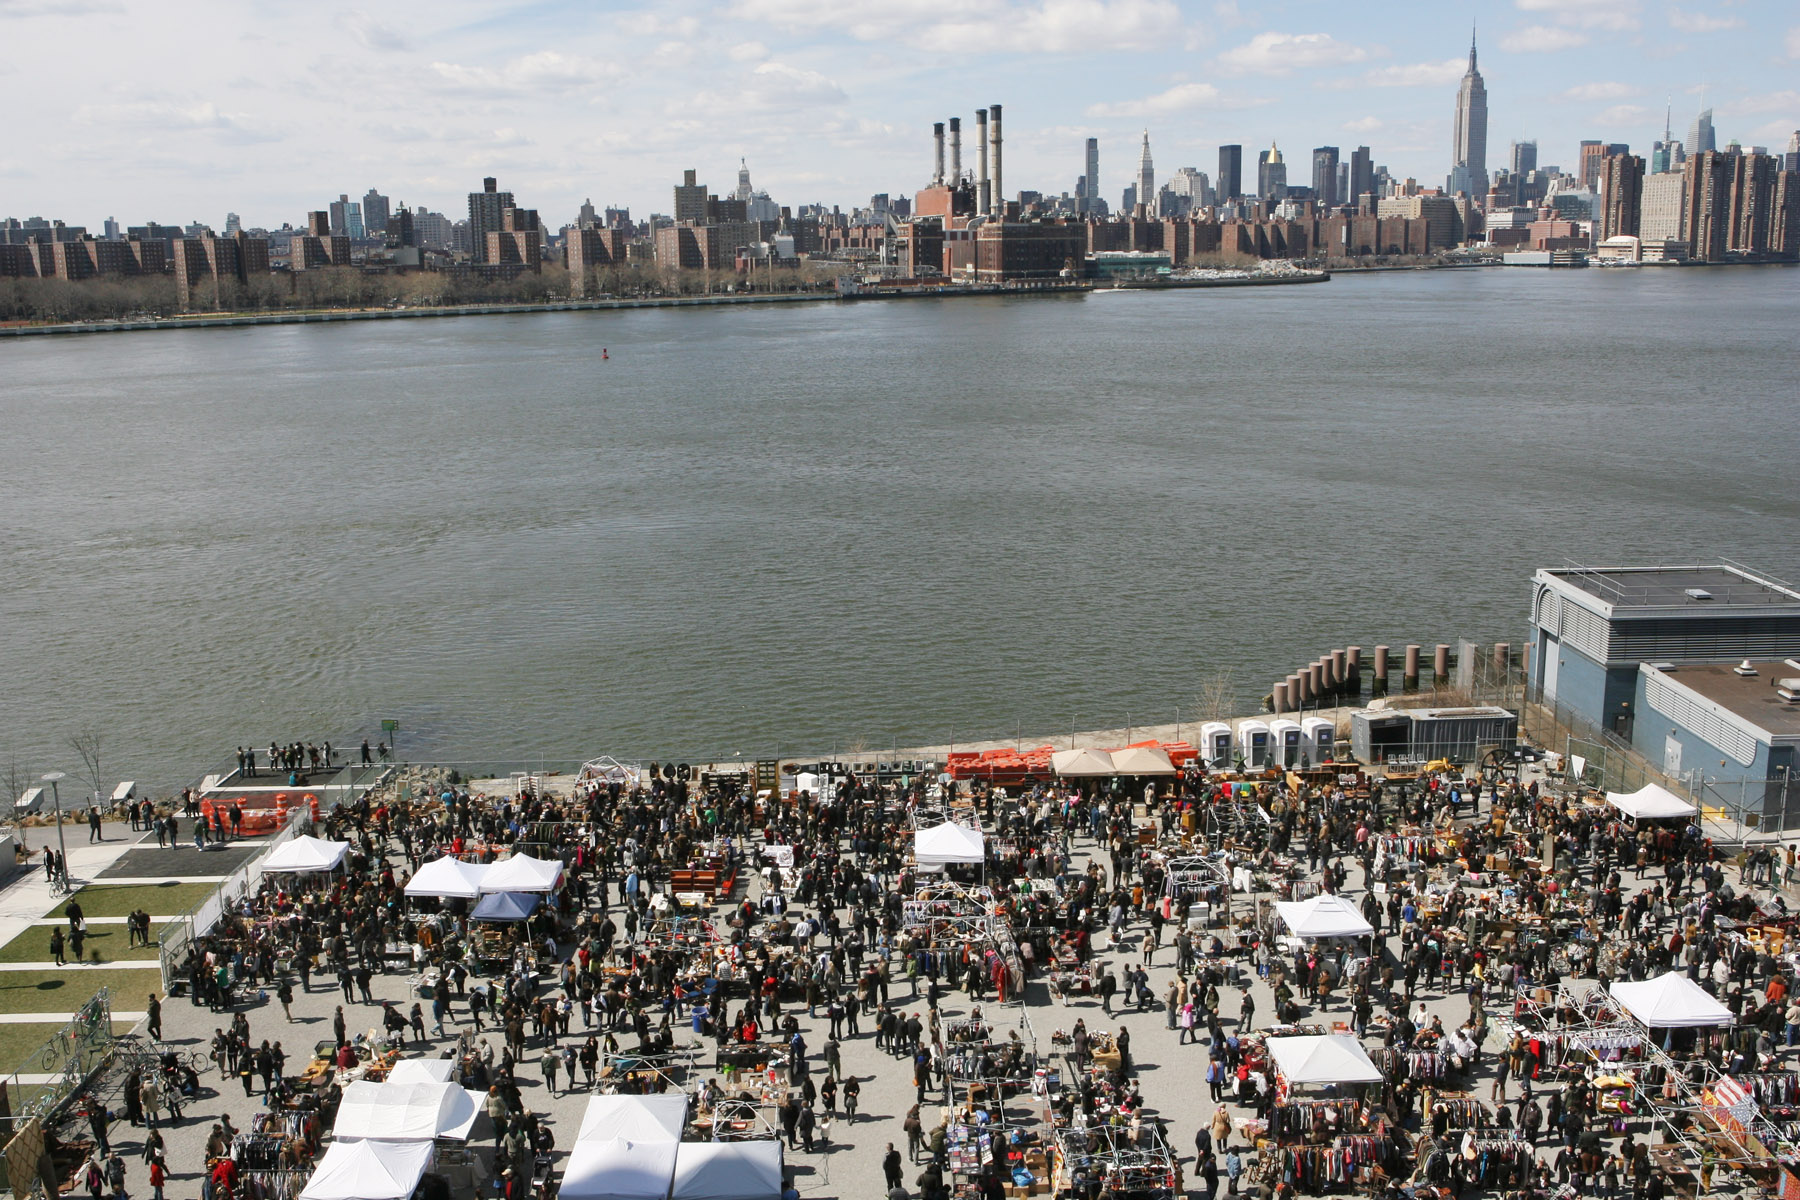 The_Brooklyn_Flea_at_Williamsburg